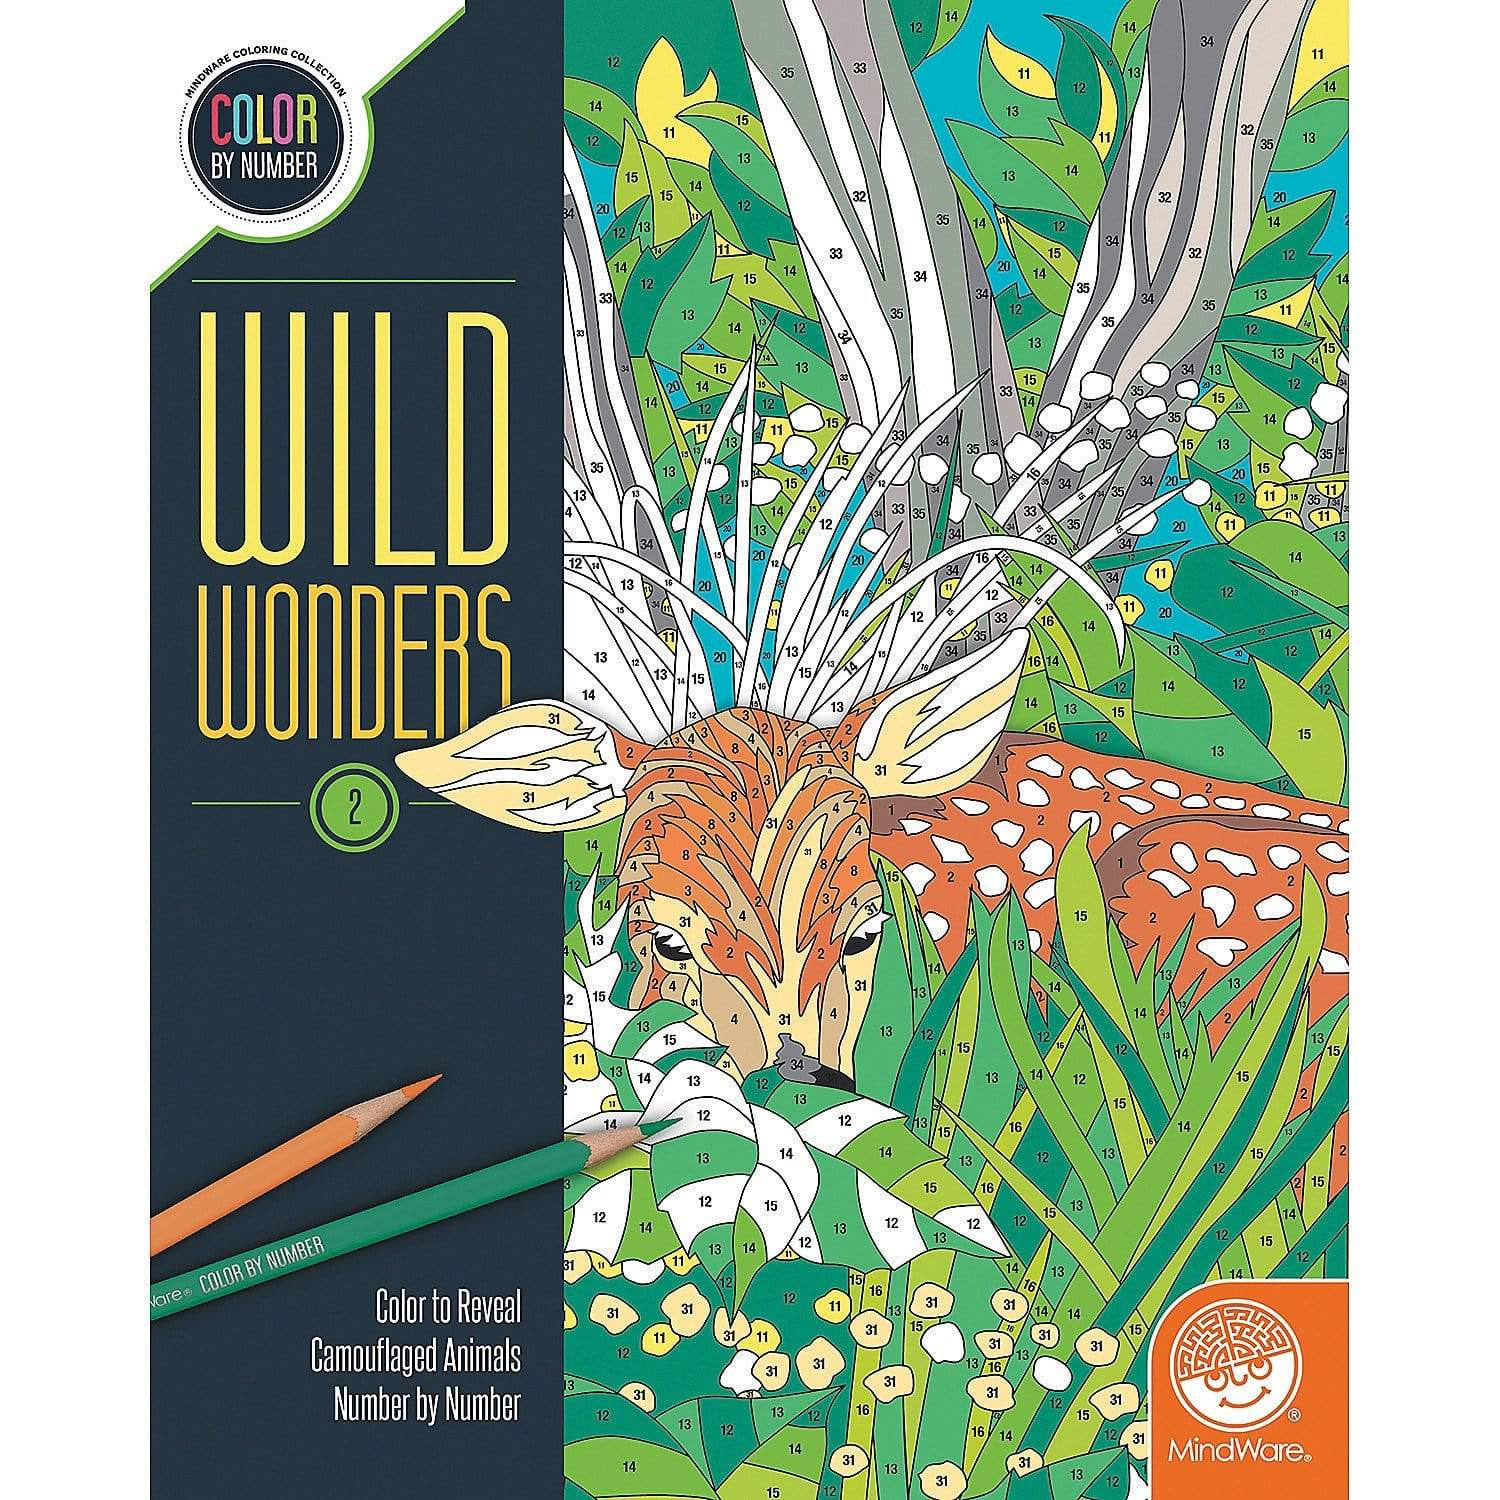 Wild Wonders: Book 2 color by number Mindware Art Supplies